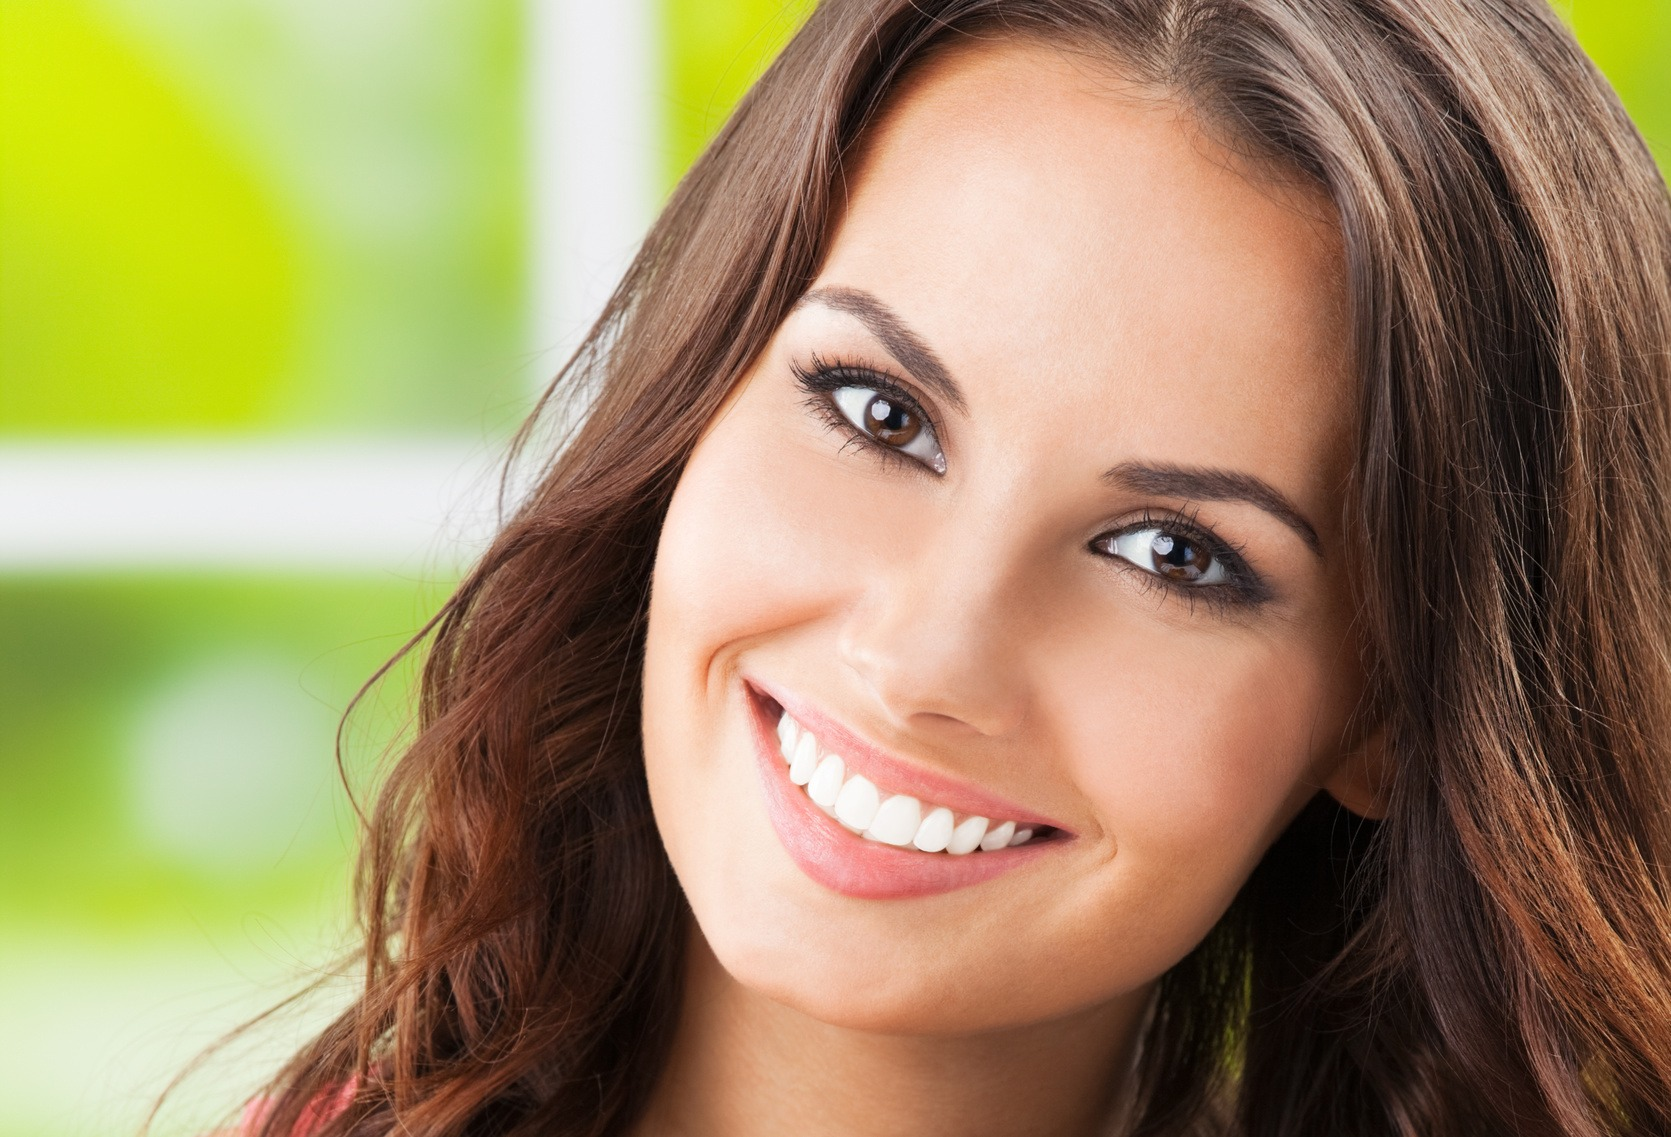 Smile with confidence with Orthodontics by Dr. Michael Boisson at Boisson Dental Group in Grande Prairie, Alberta